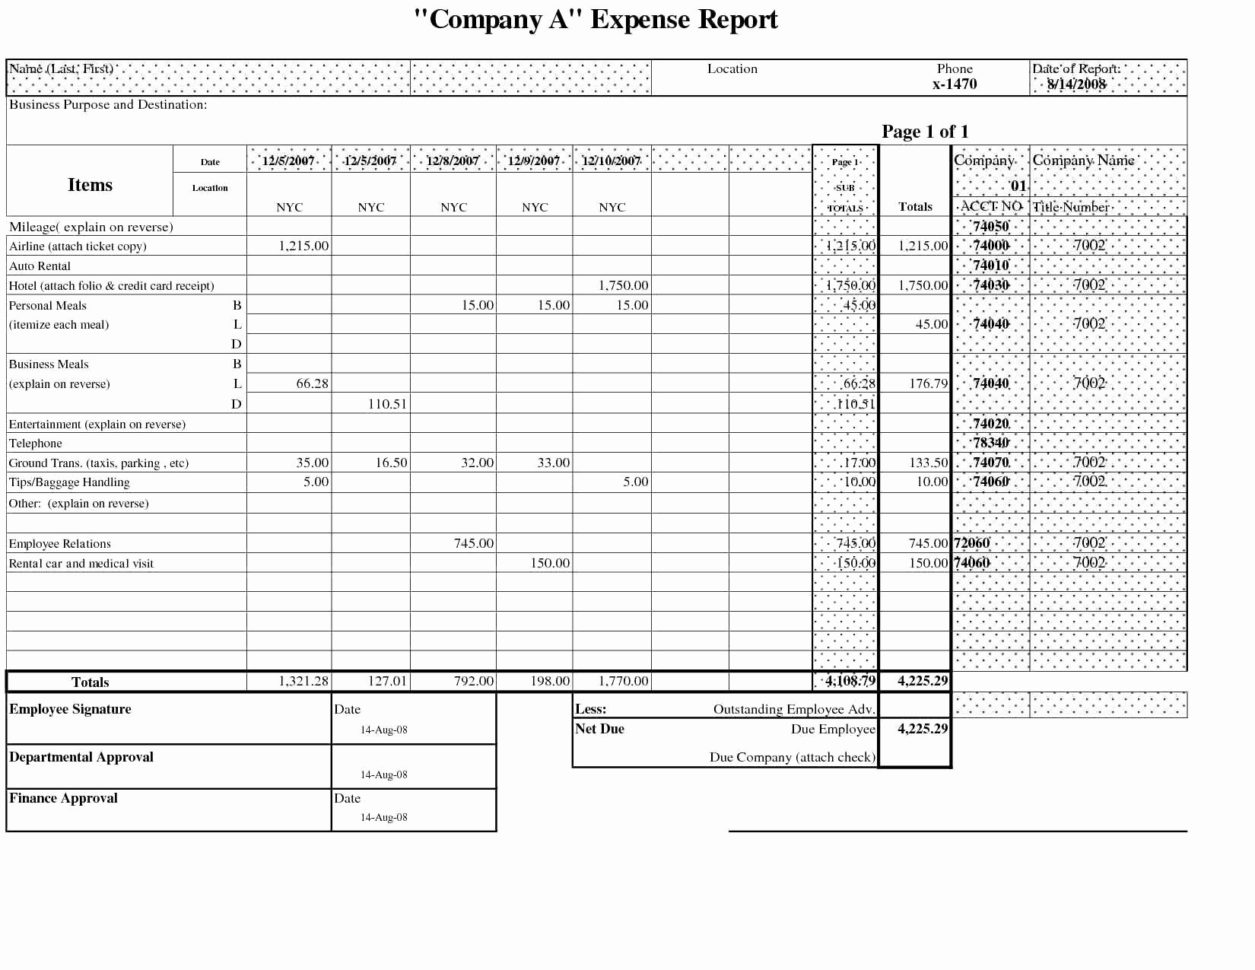 Excel Medical Expense Template New Business Expenses Form Template Intended For Business Expenses Form Template